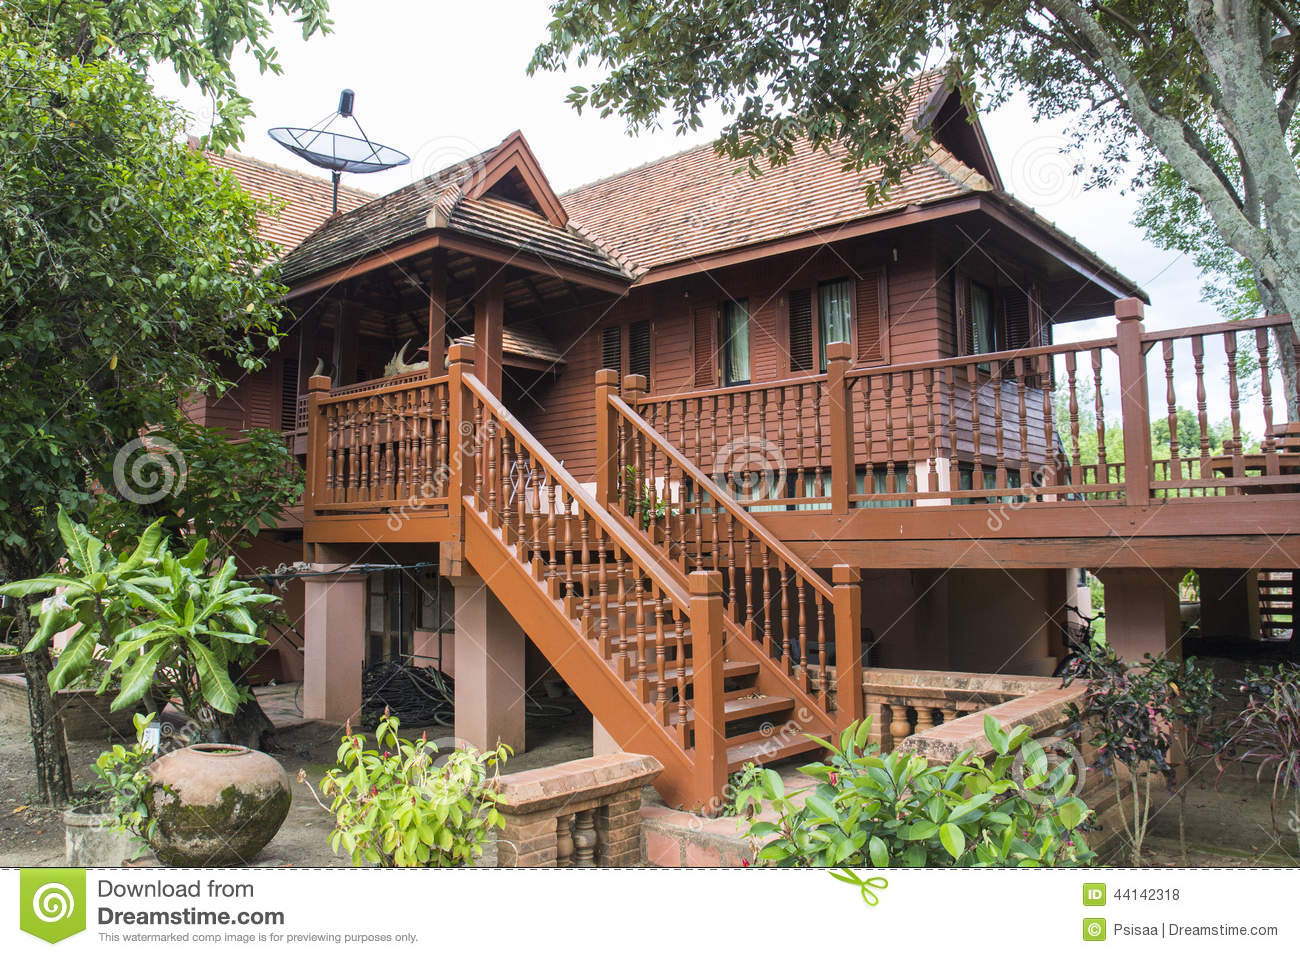 Traditional thailand wooden house